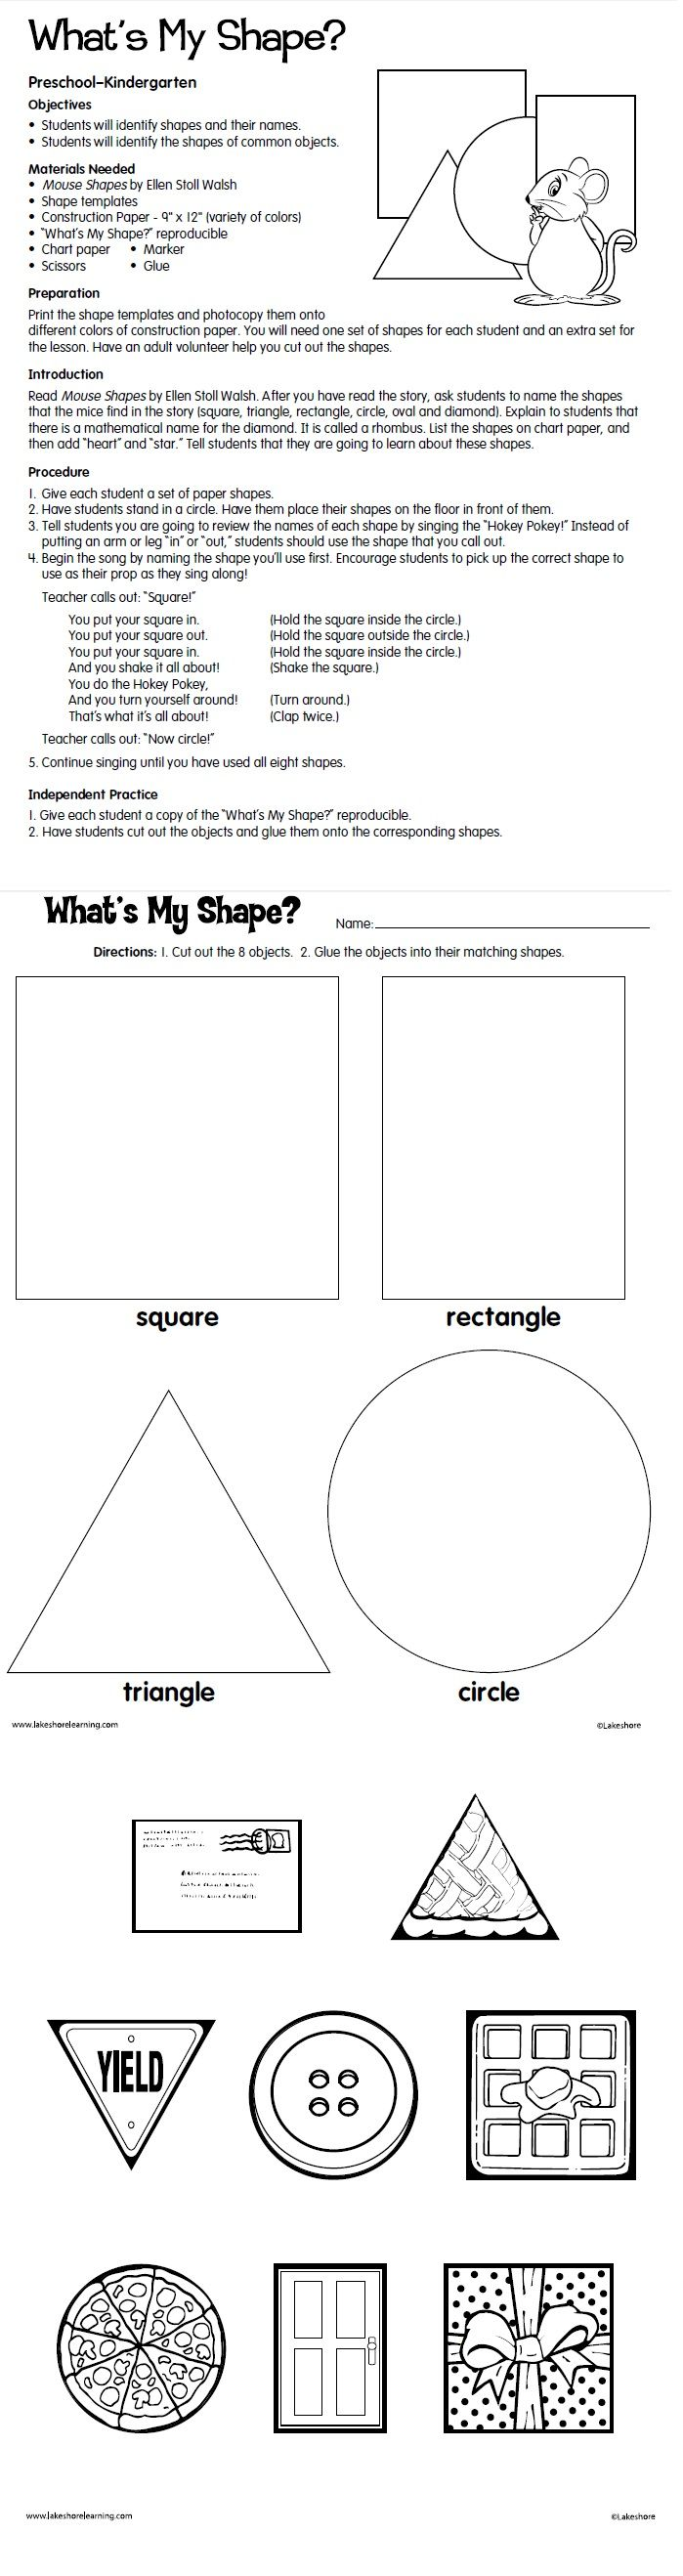 What's My Shape? Lesson Plan from Lakeshore Learning